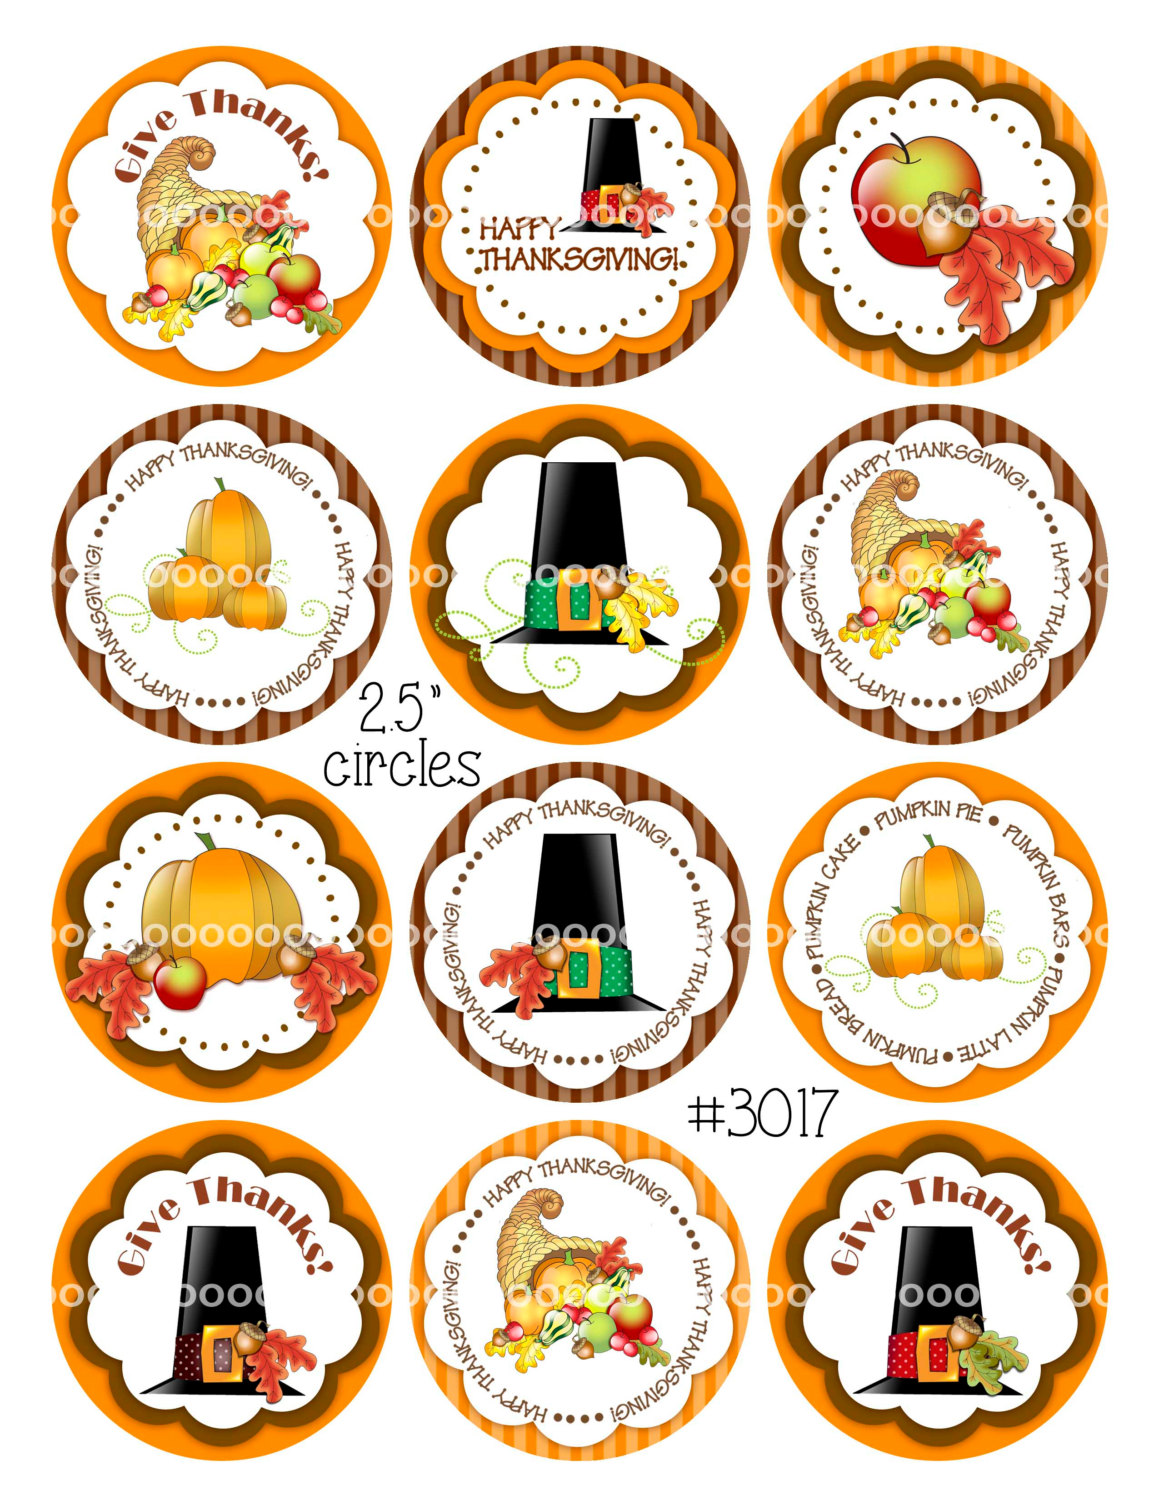 Gourd clipart thanksgiving A download is Thanksgiving instant